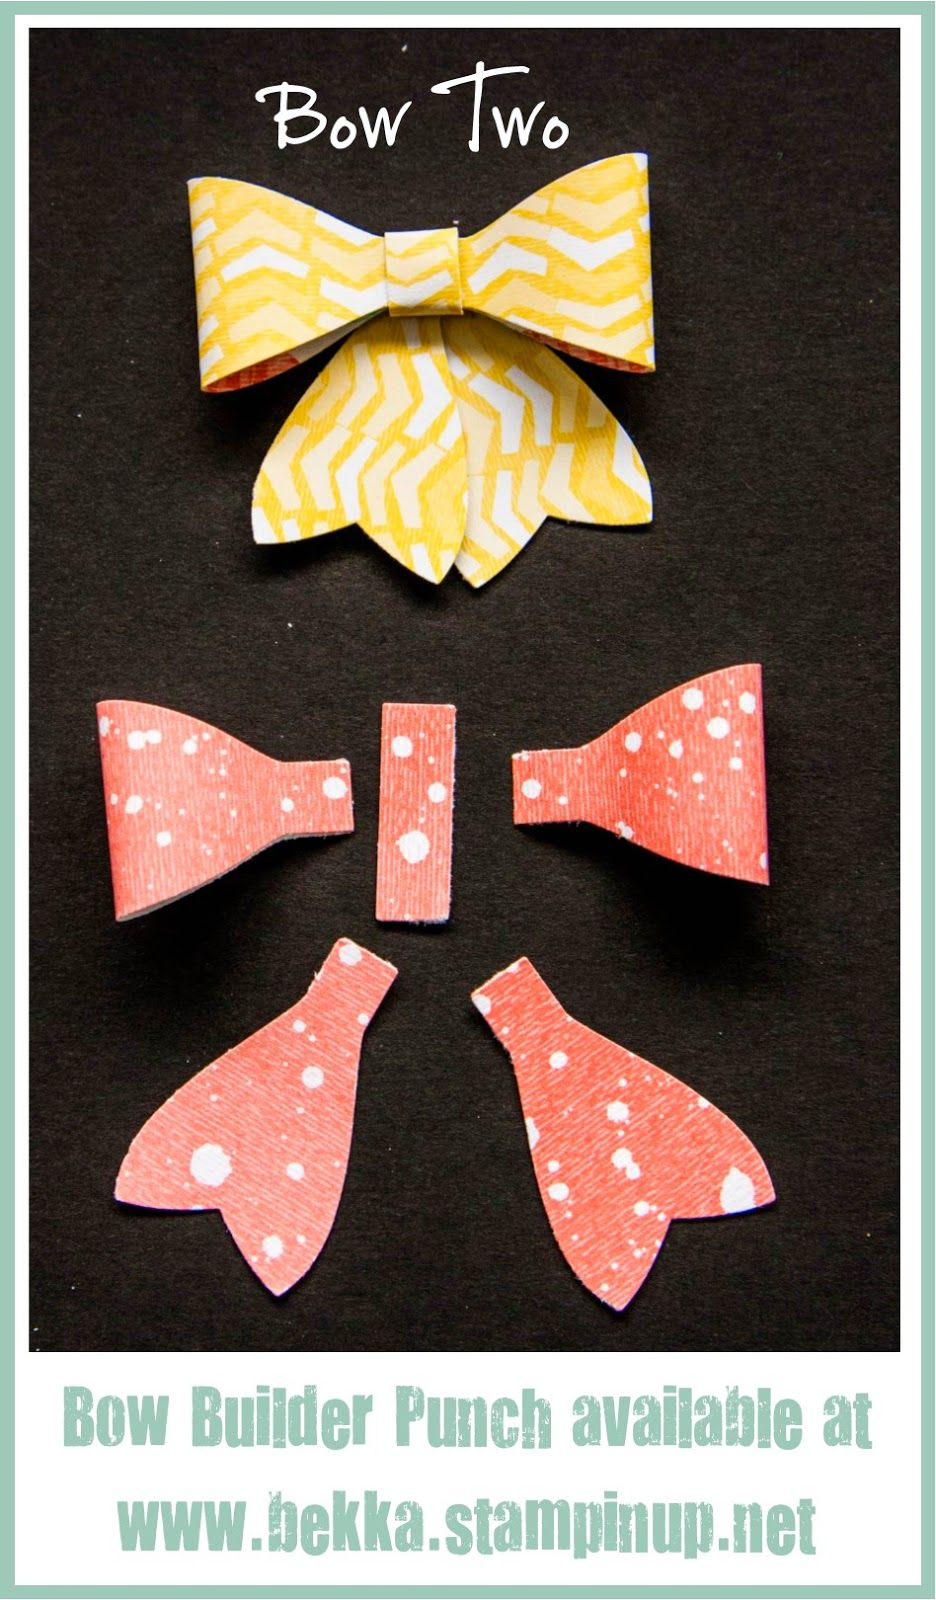 3 Fun Things you can do with the Bow Builder Punch from